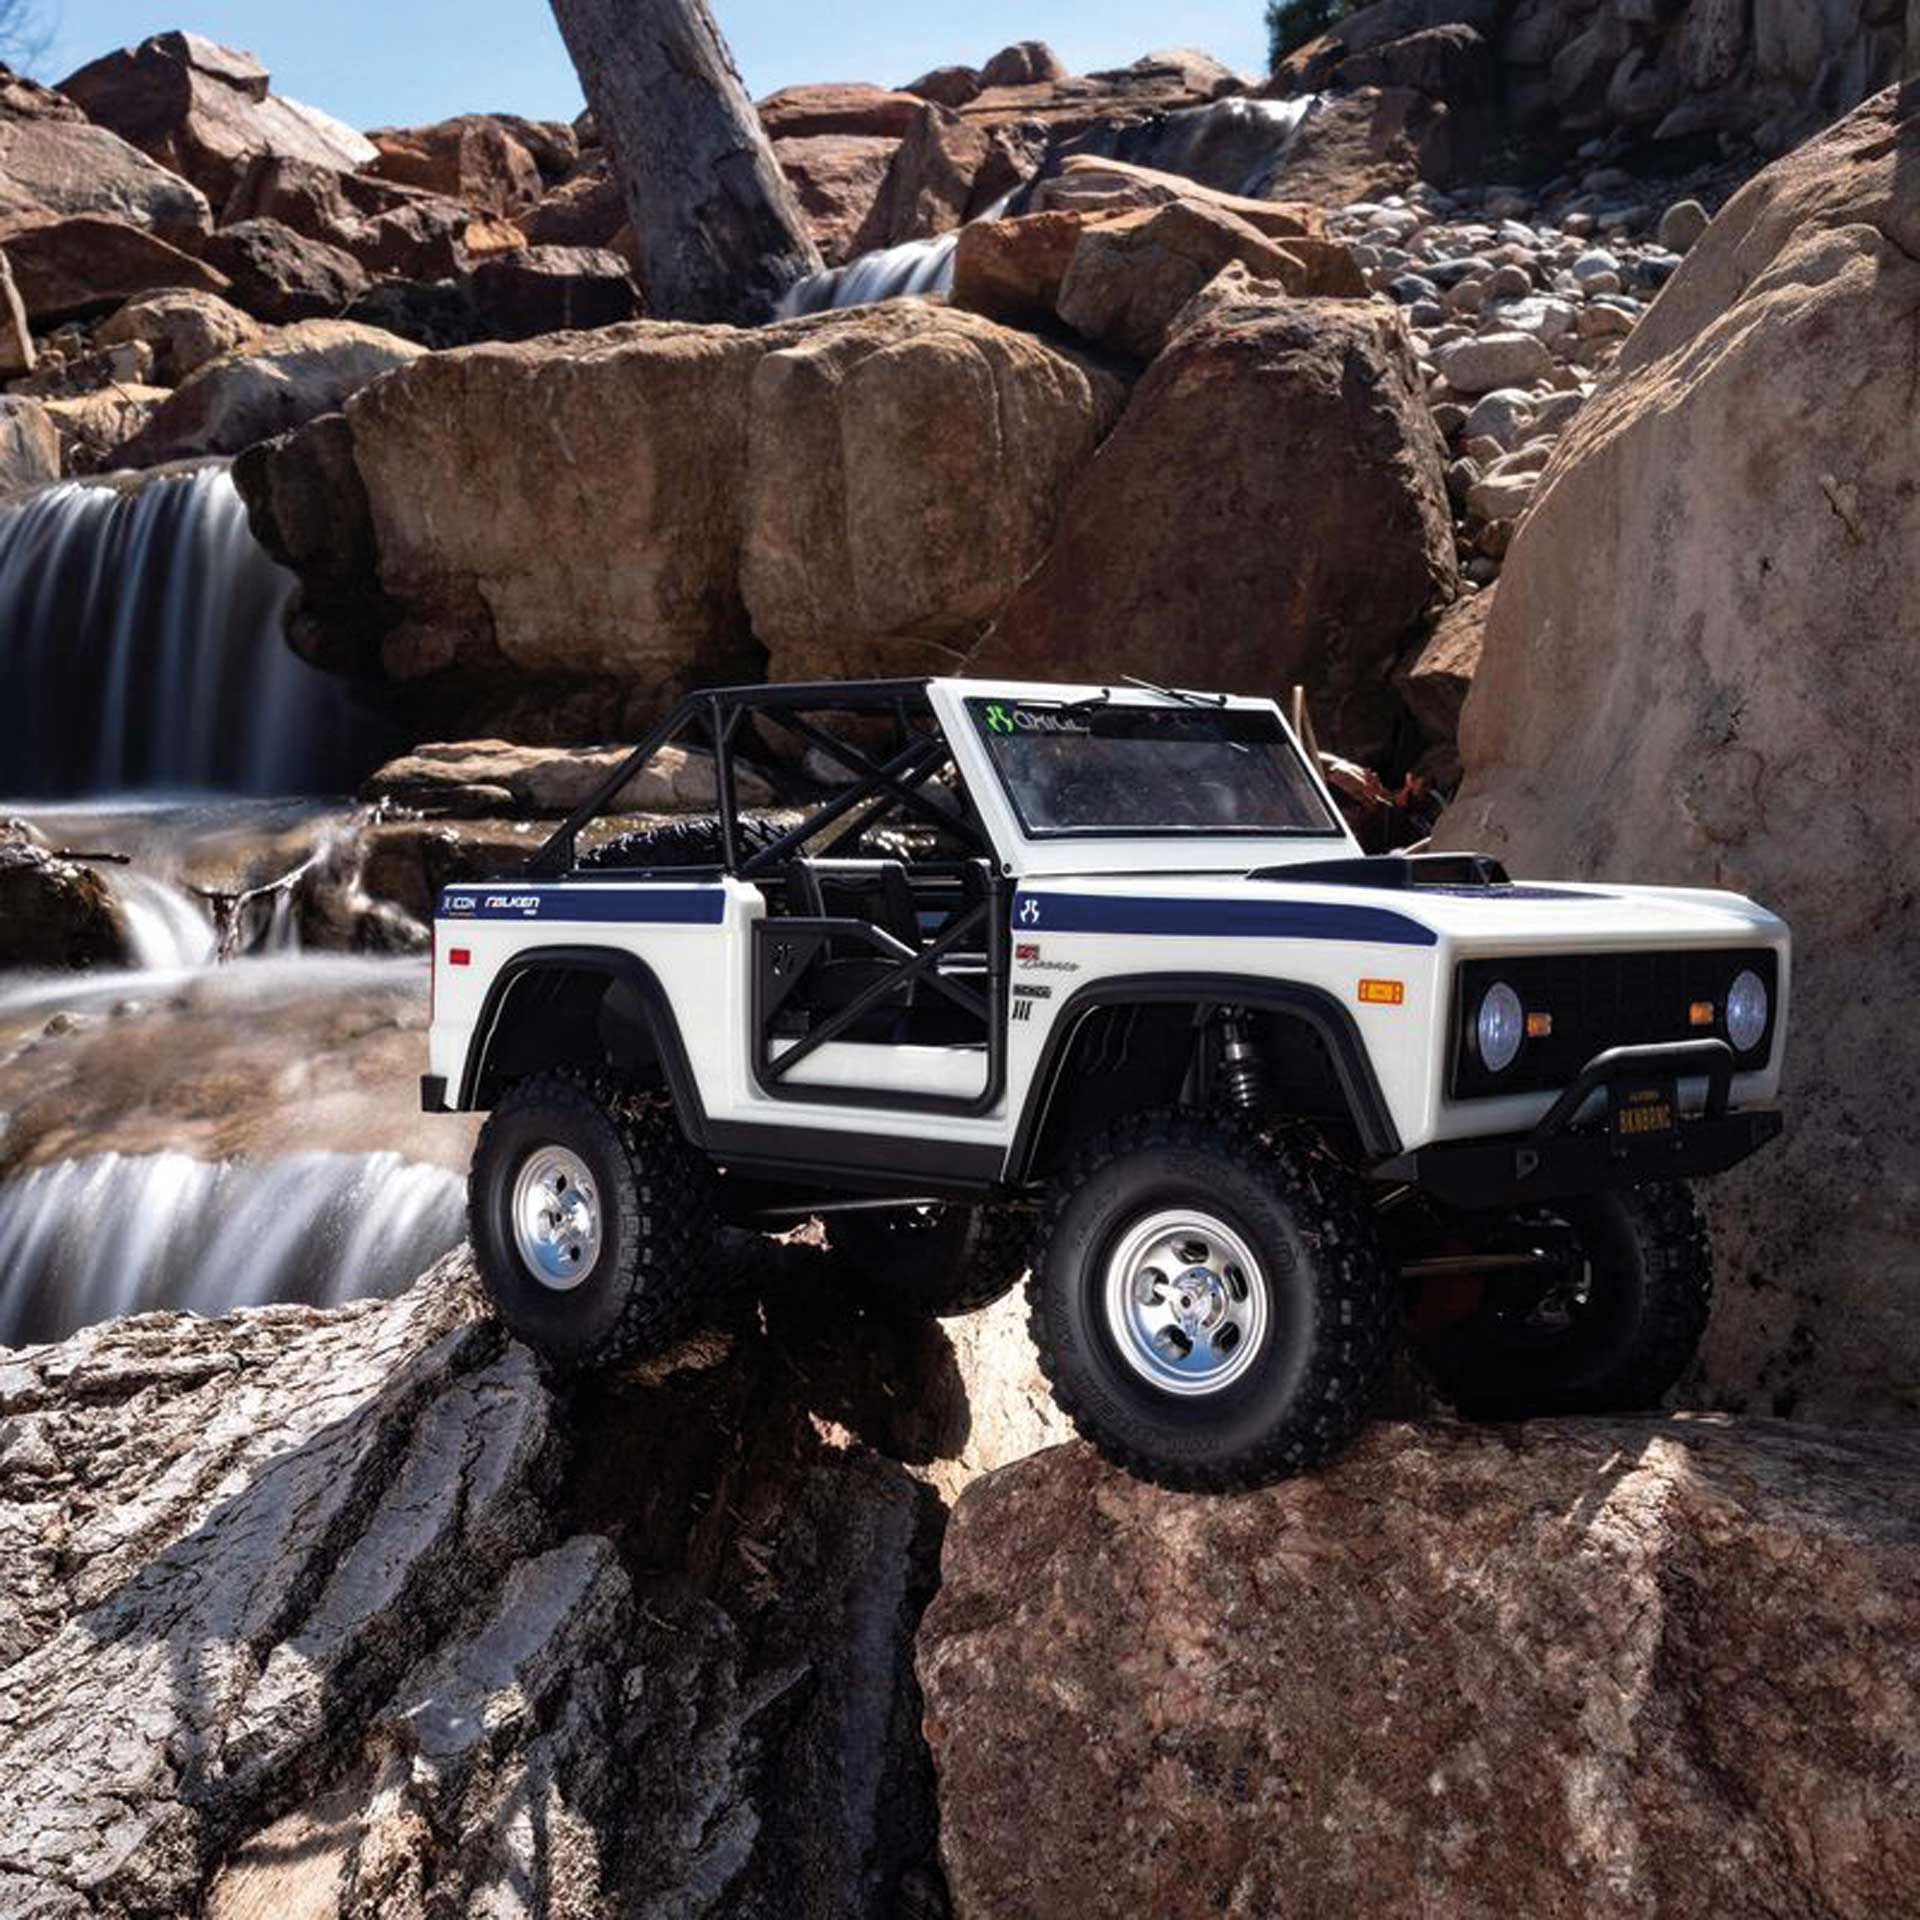 AXIAL SCX10 III Early Ford Bronco 4WD 1/10 RTR Weiß